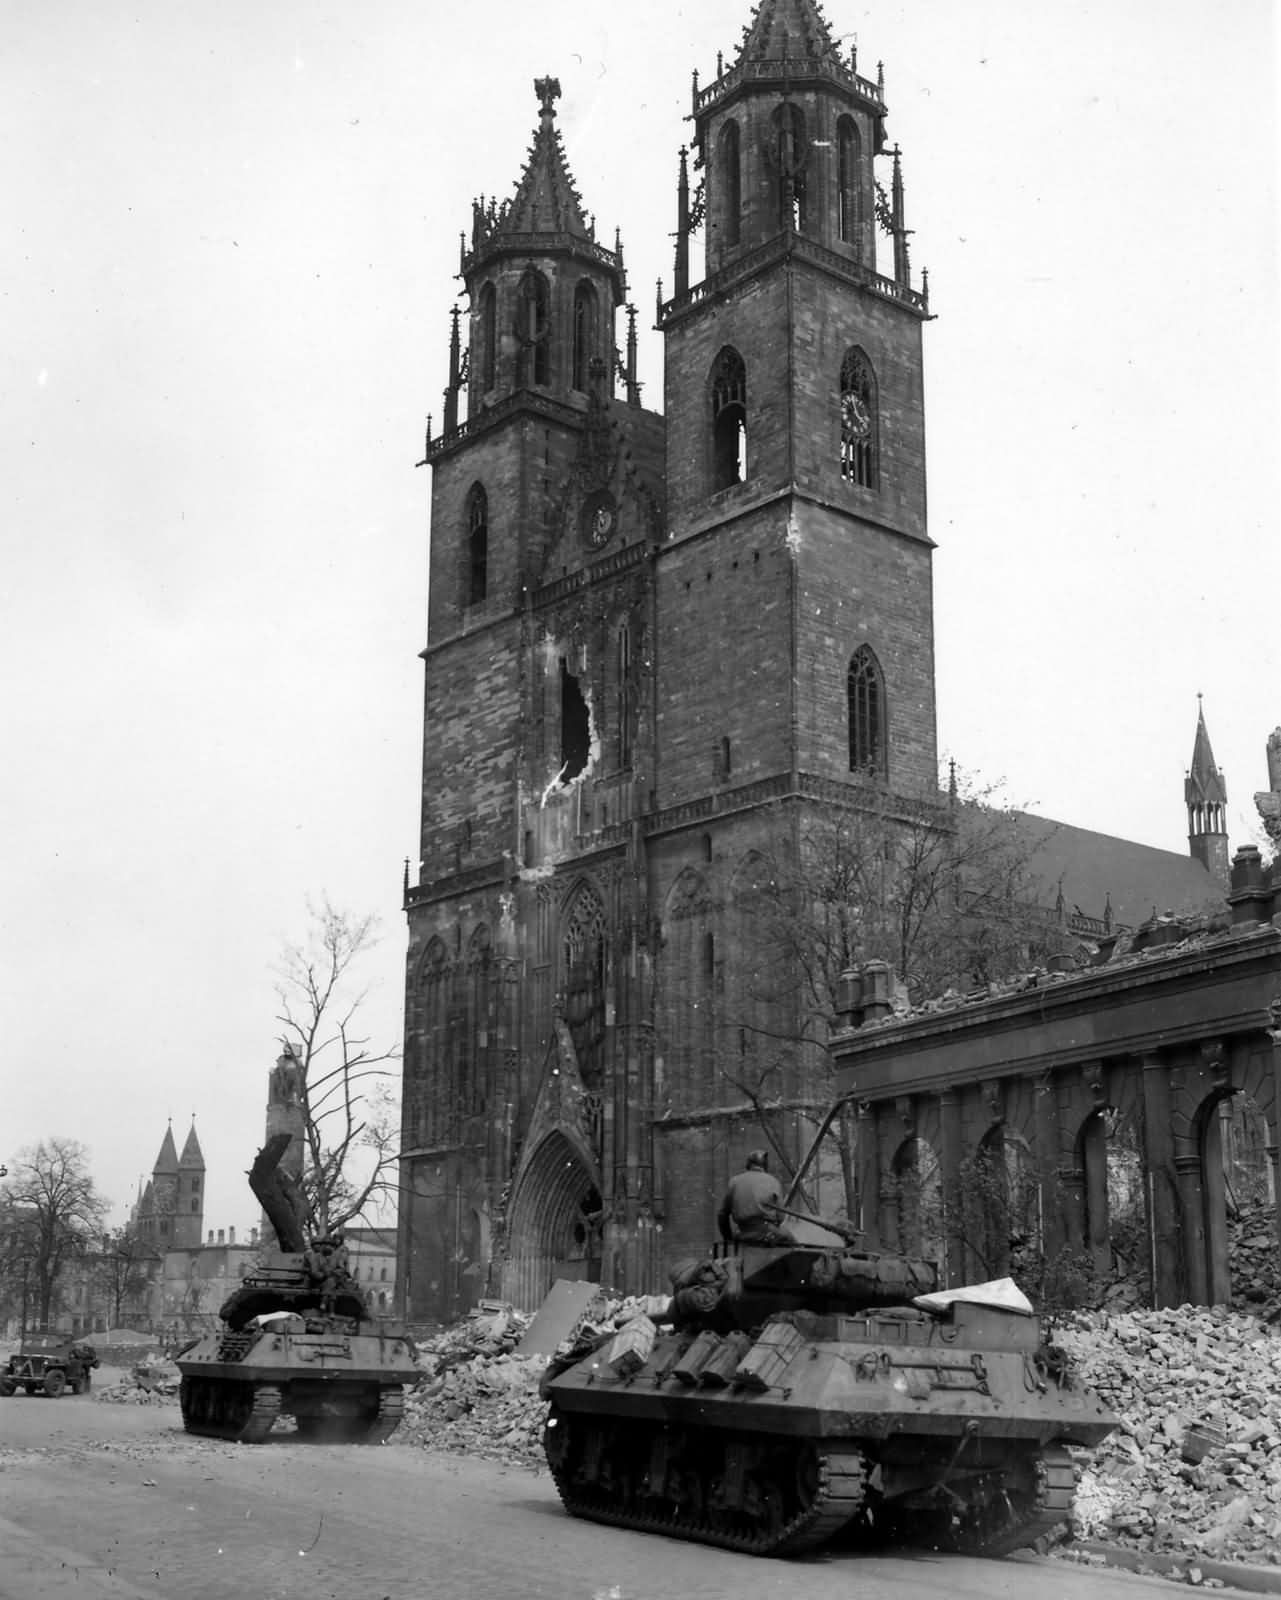 M10_Wolverine_Tank_Destroyers_30th_Infantry_Division_Magdeburg_Germany_1945